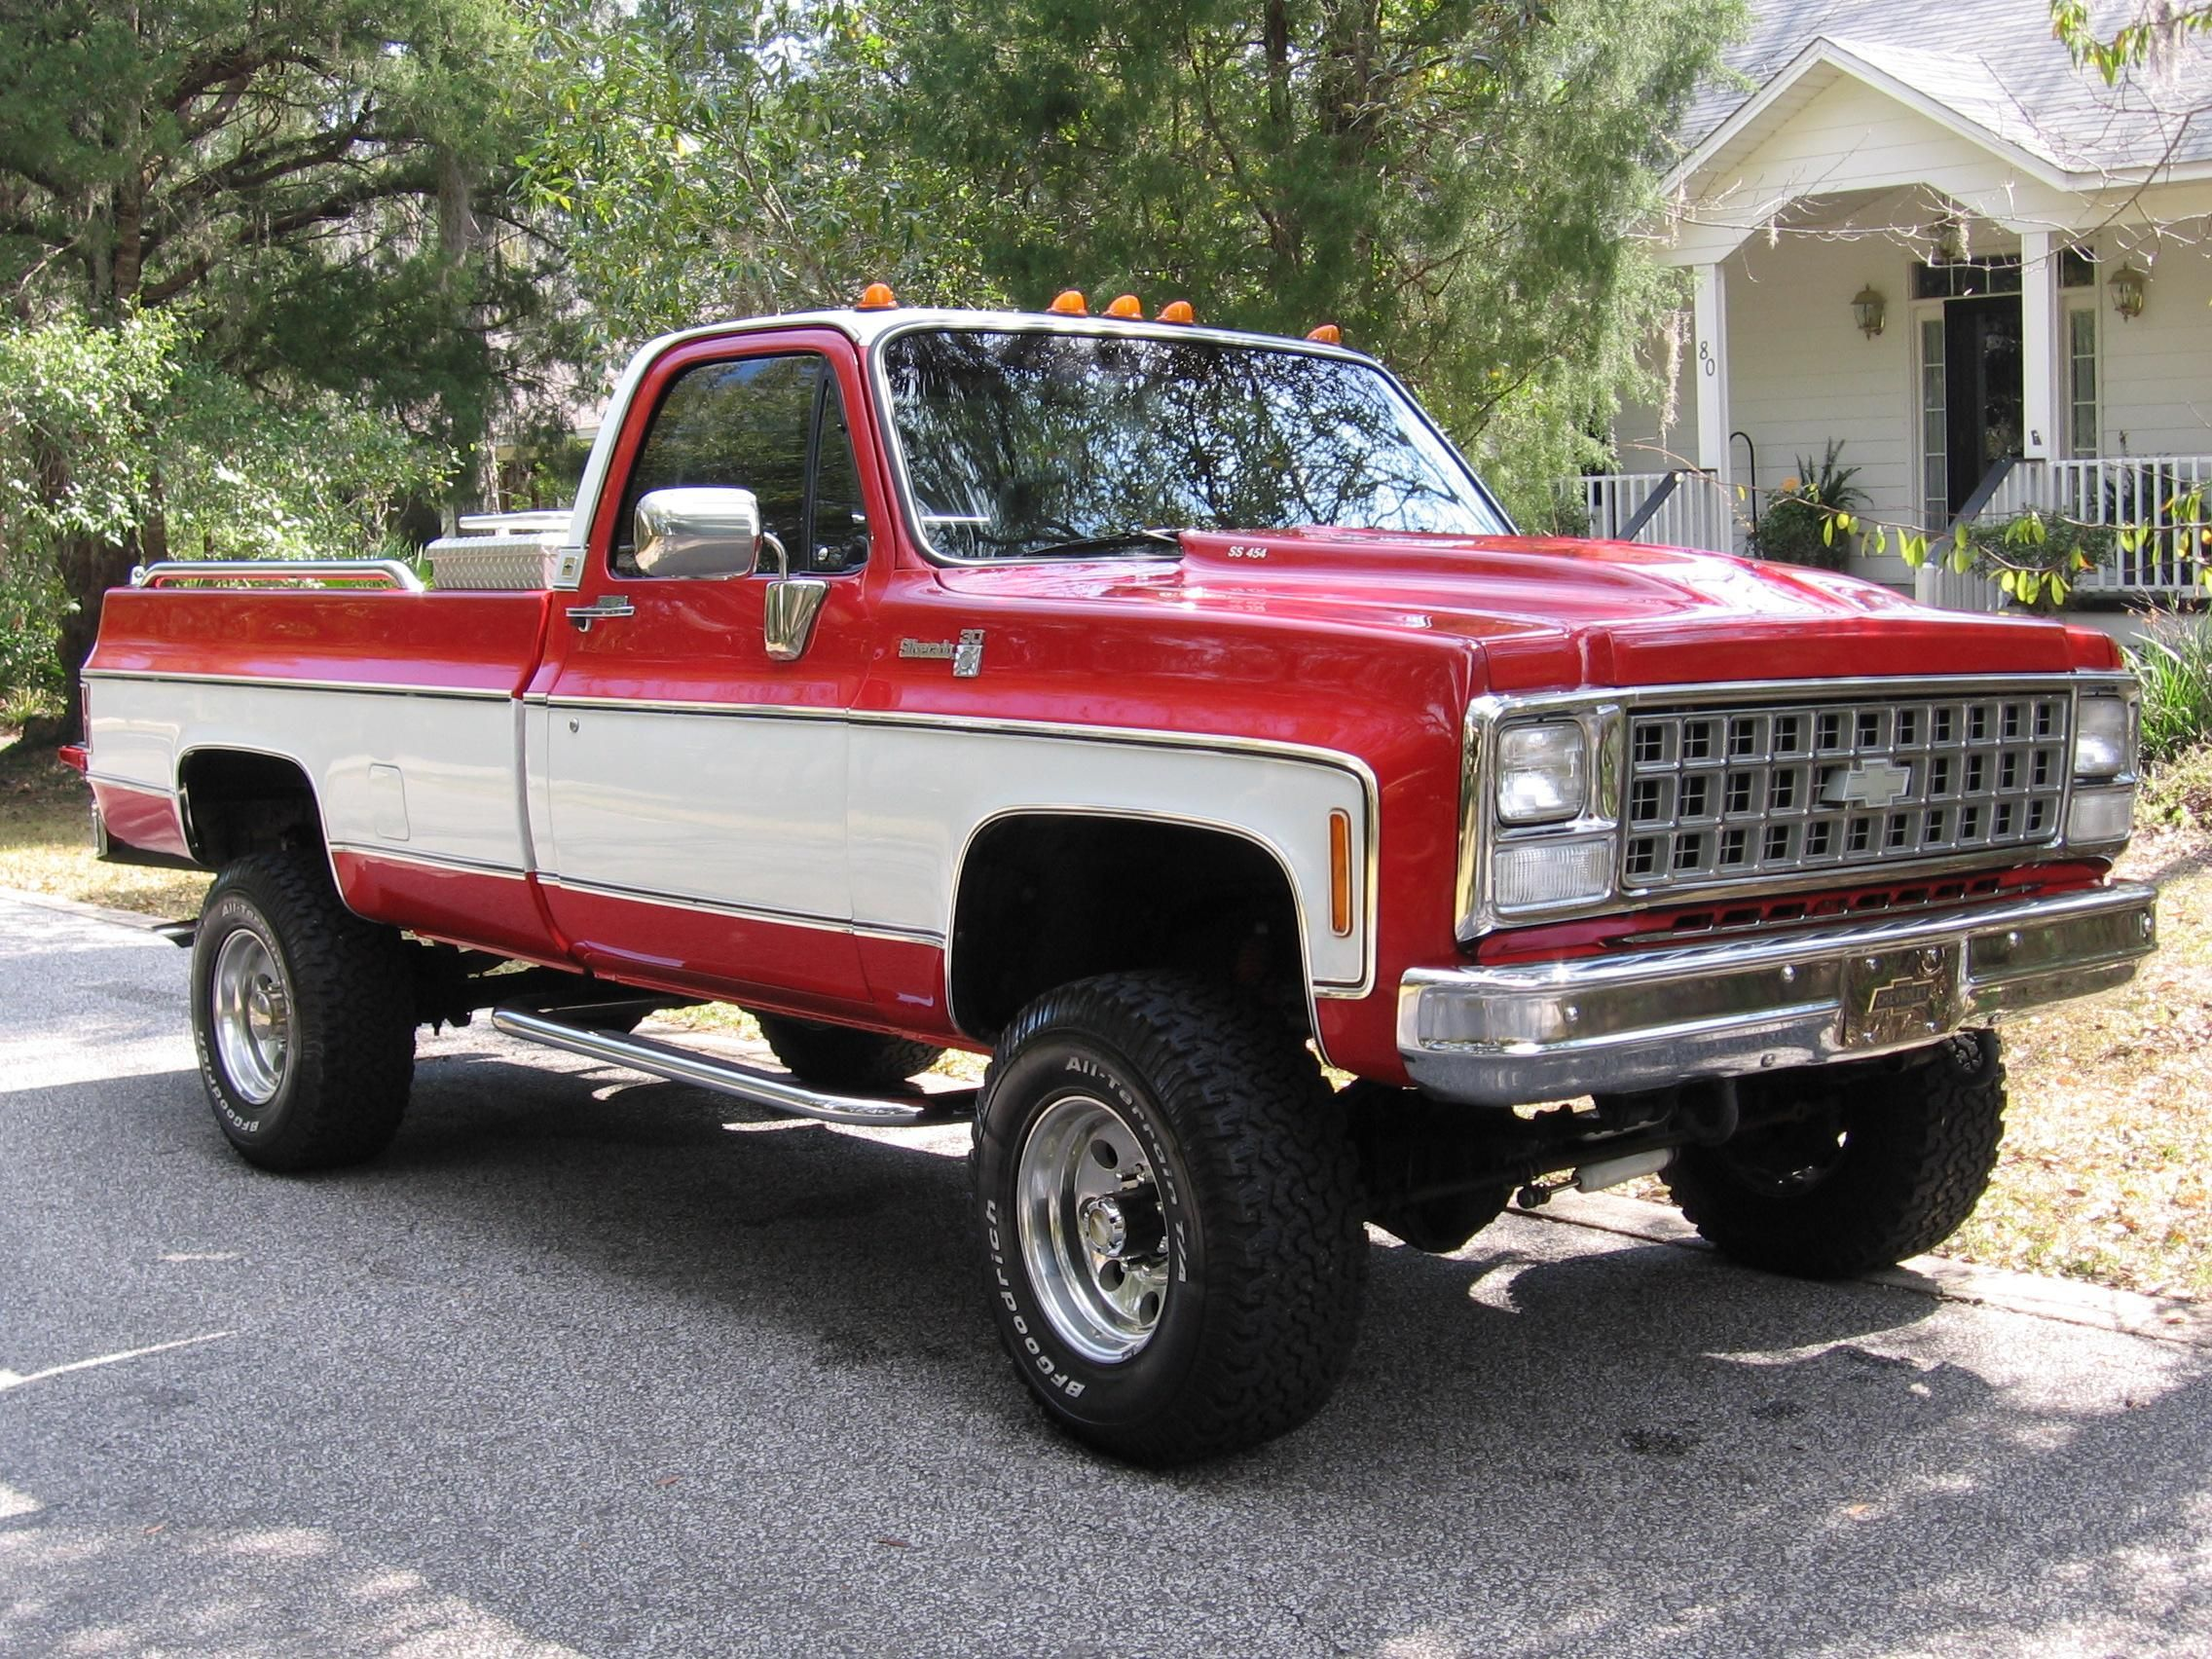 Red and white two tone lifted Chevrolet truck | Silly Boys, Trucks ...